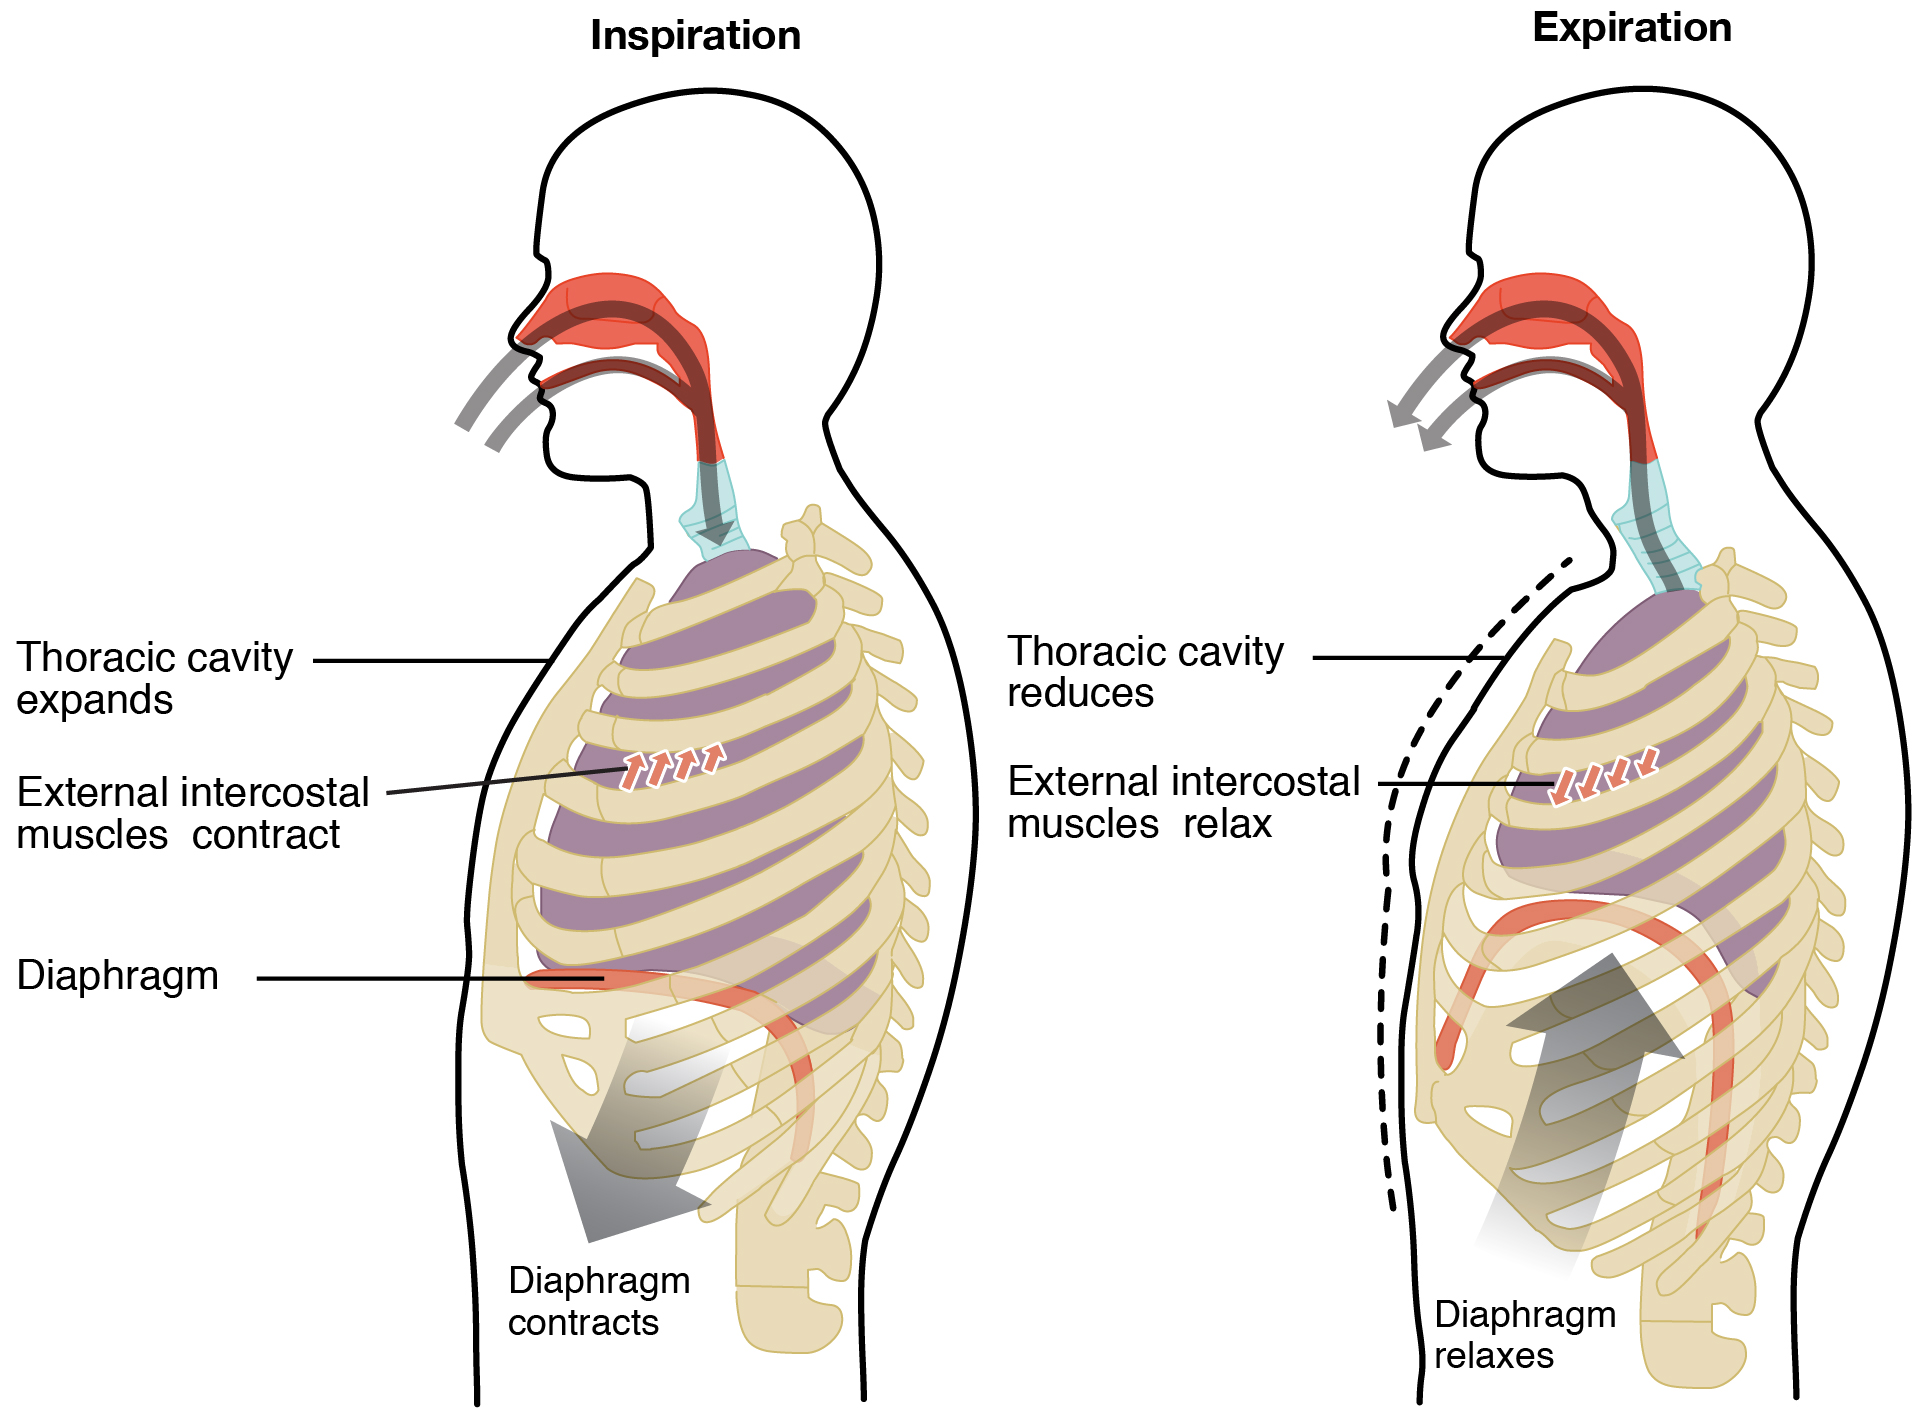 Contraction Of The External Intercostal Muscles Causes Which Of